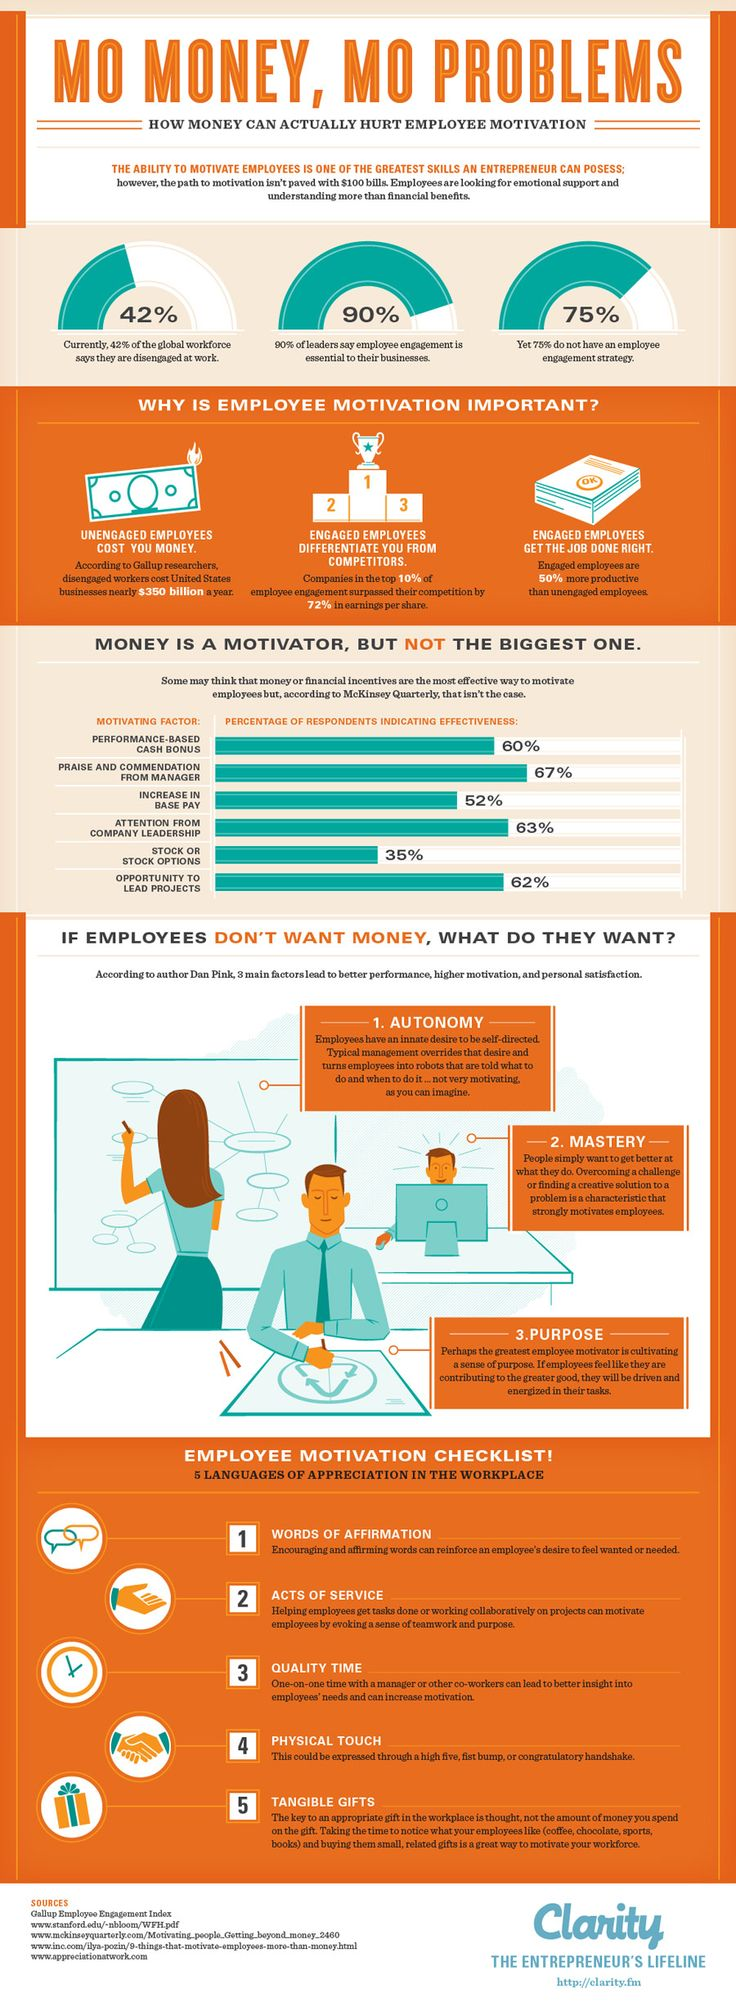 What Really Motivates Employees?